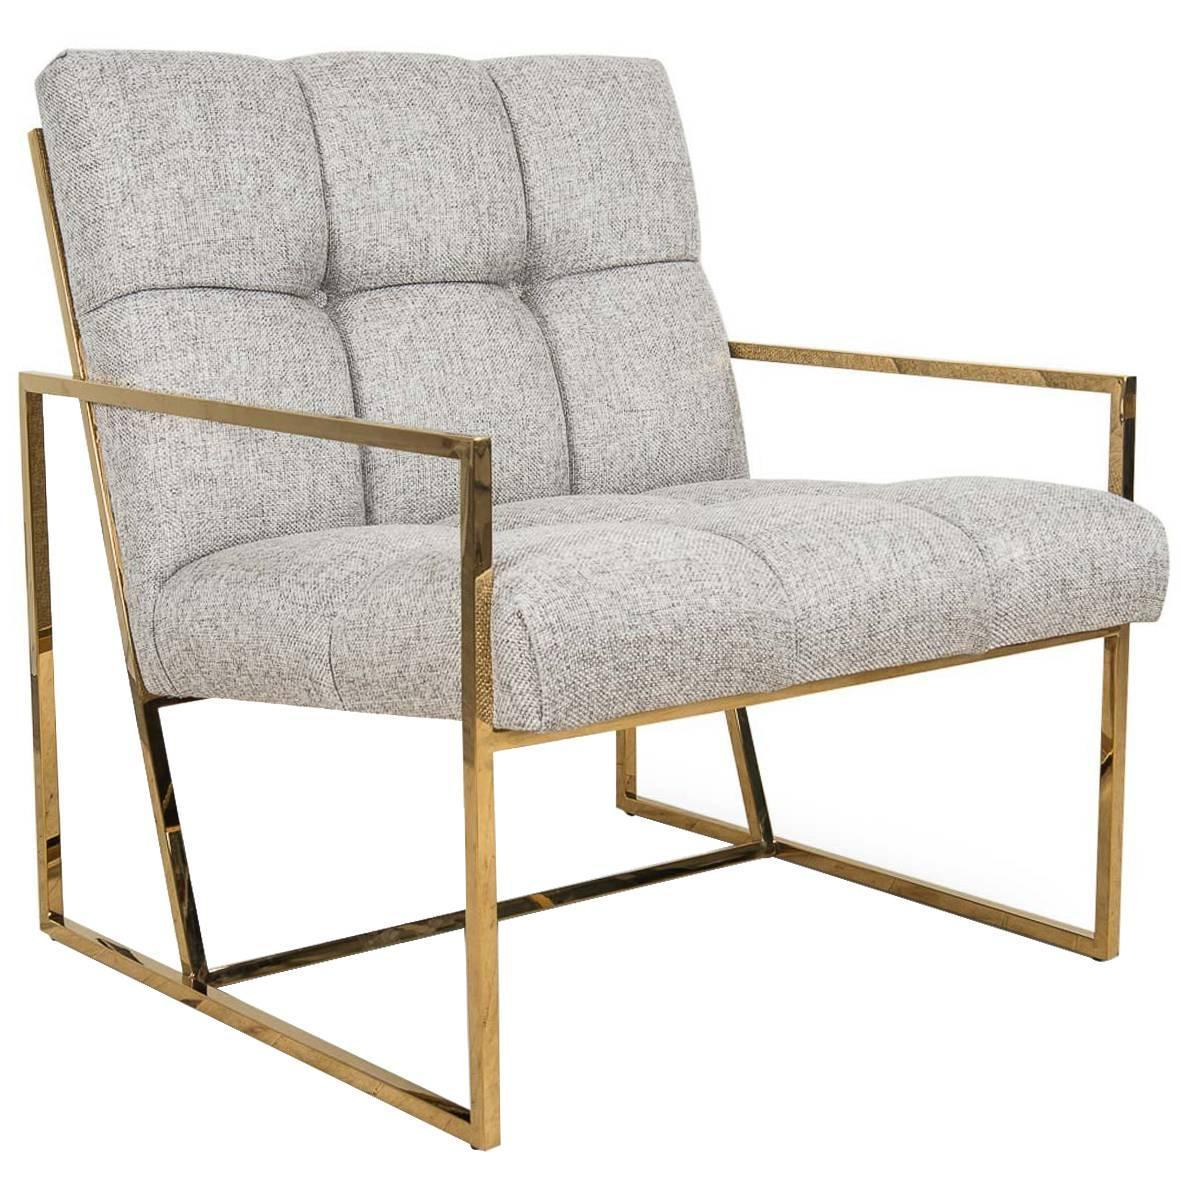 Pleasant Modern Style Lisbon Accent Chair In Gold Speckled Cowhide W Creativecarmelina Interior Chair Design Creativecarmelinacom